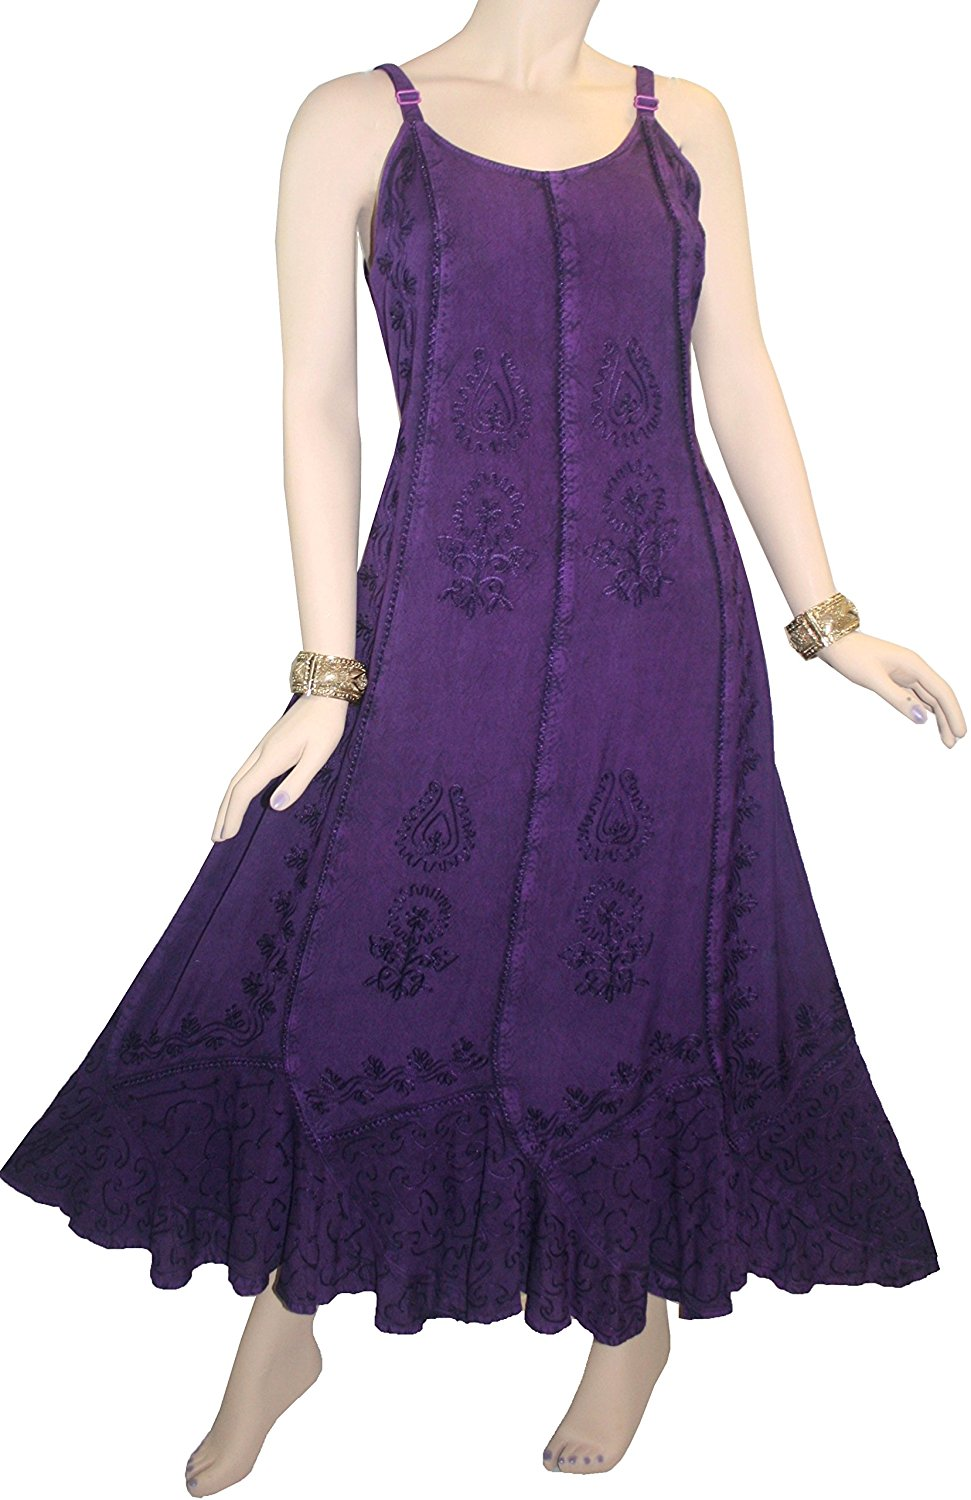 Rayon Embroidered Scalloped Hem Gypsy Spaghetti Strap Dress - Agan Traders, Purple